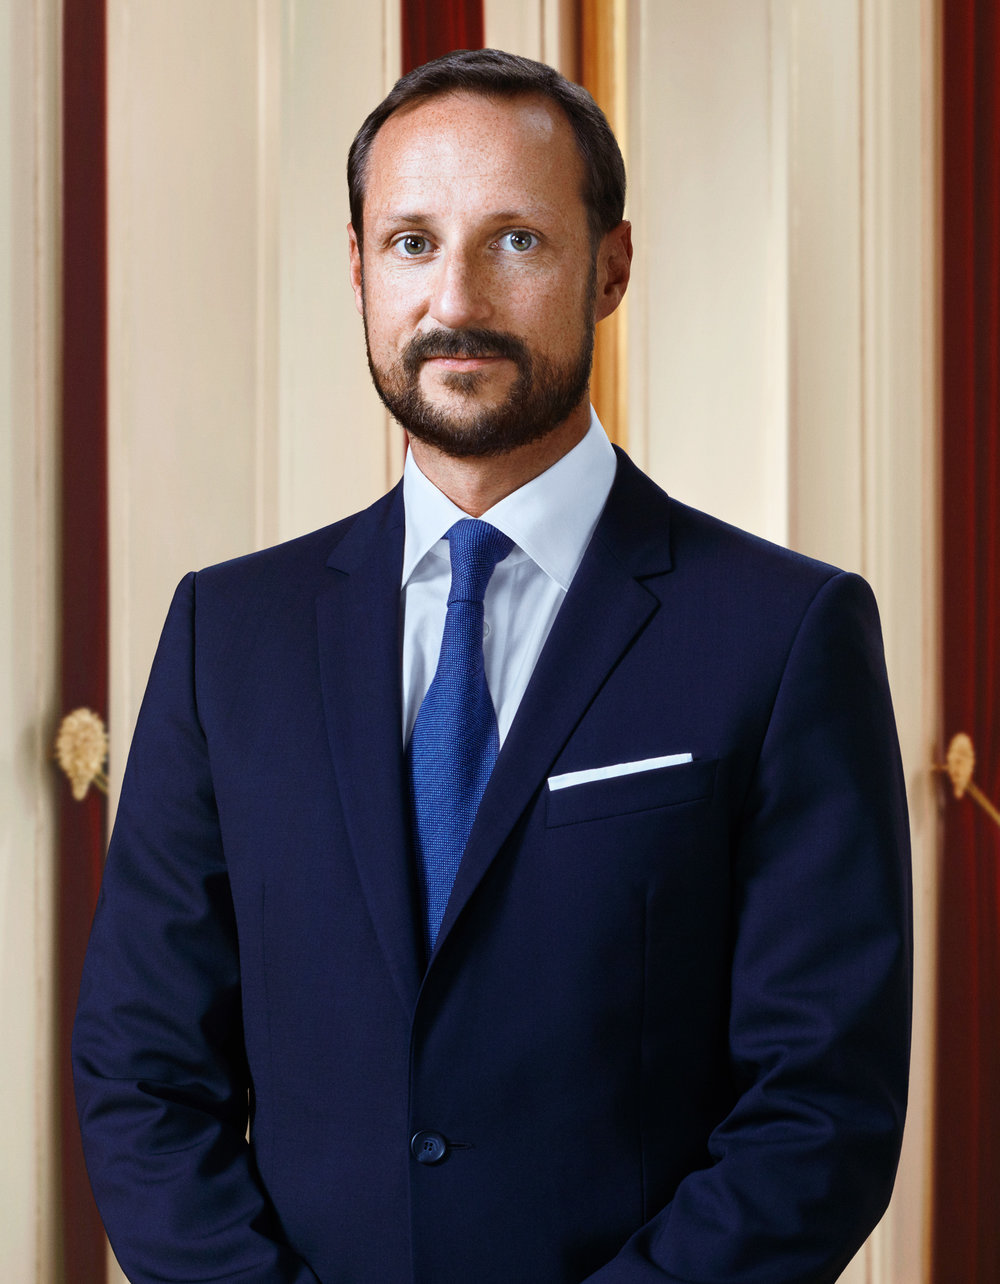 His Royal Highness Crown Prince Haakon